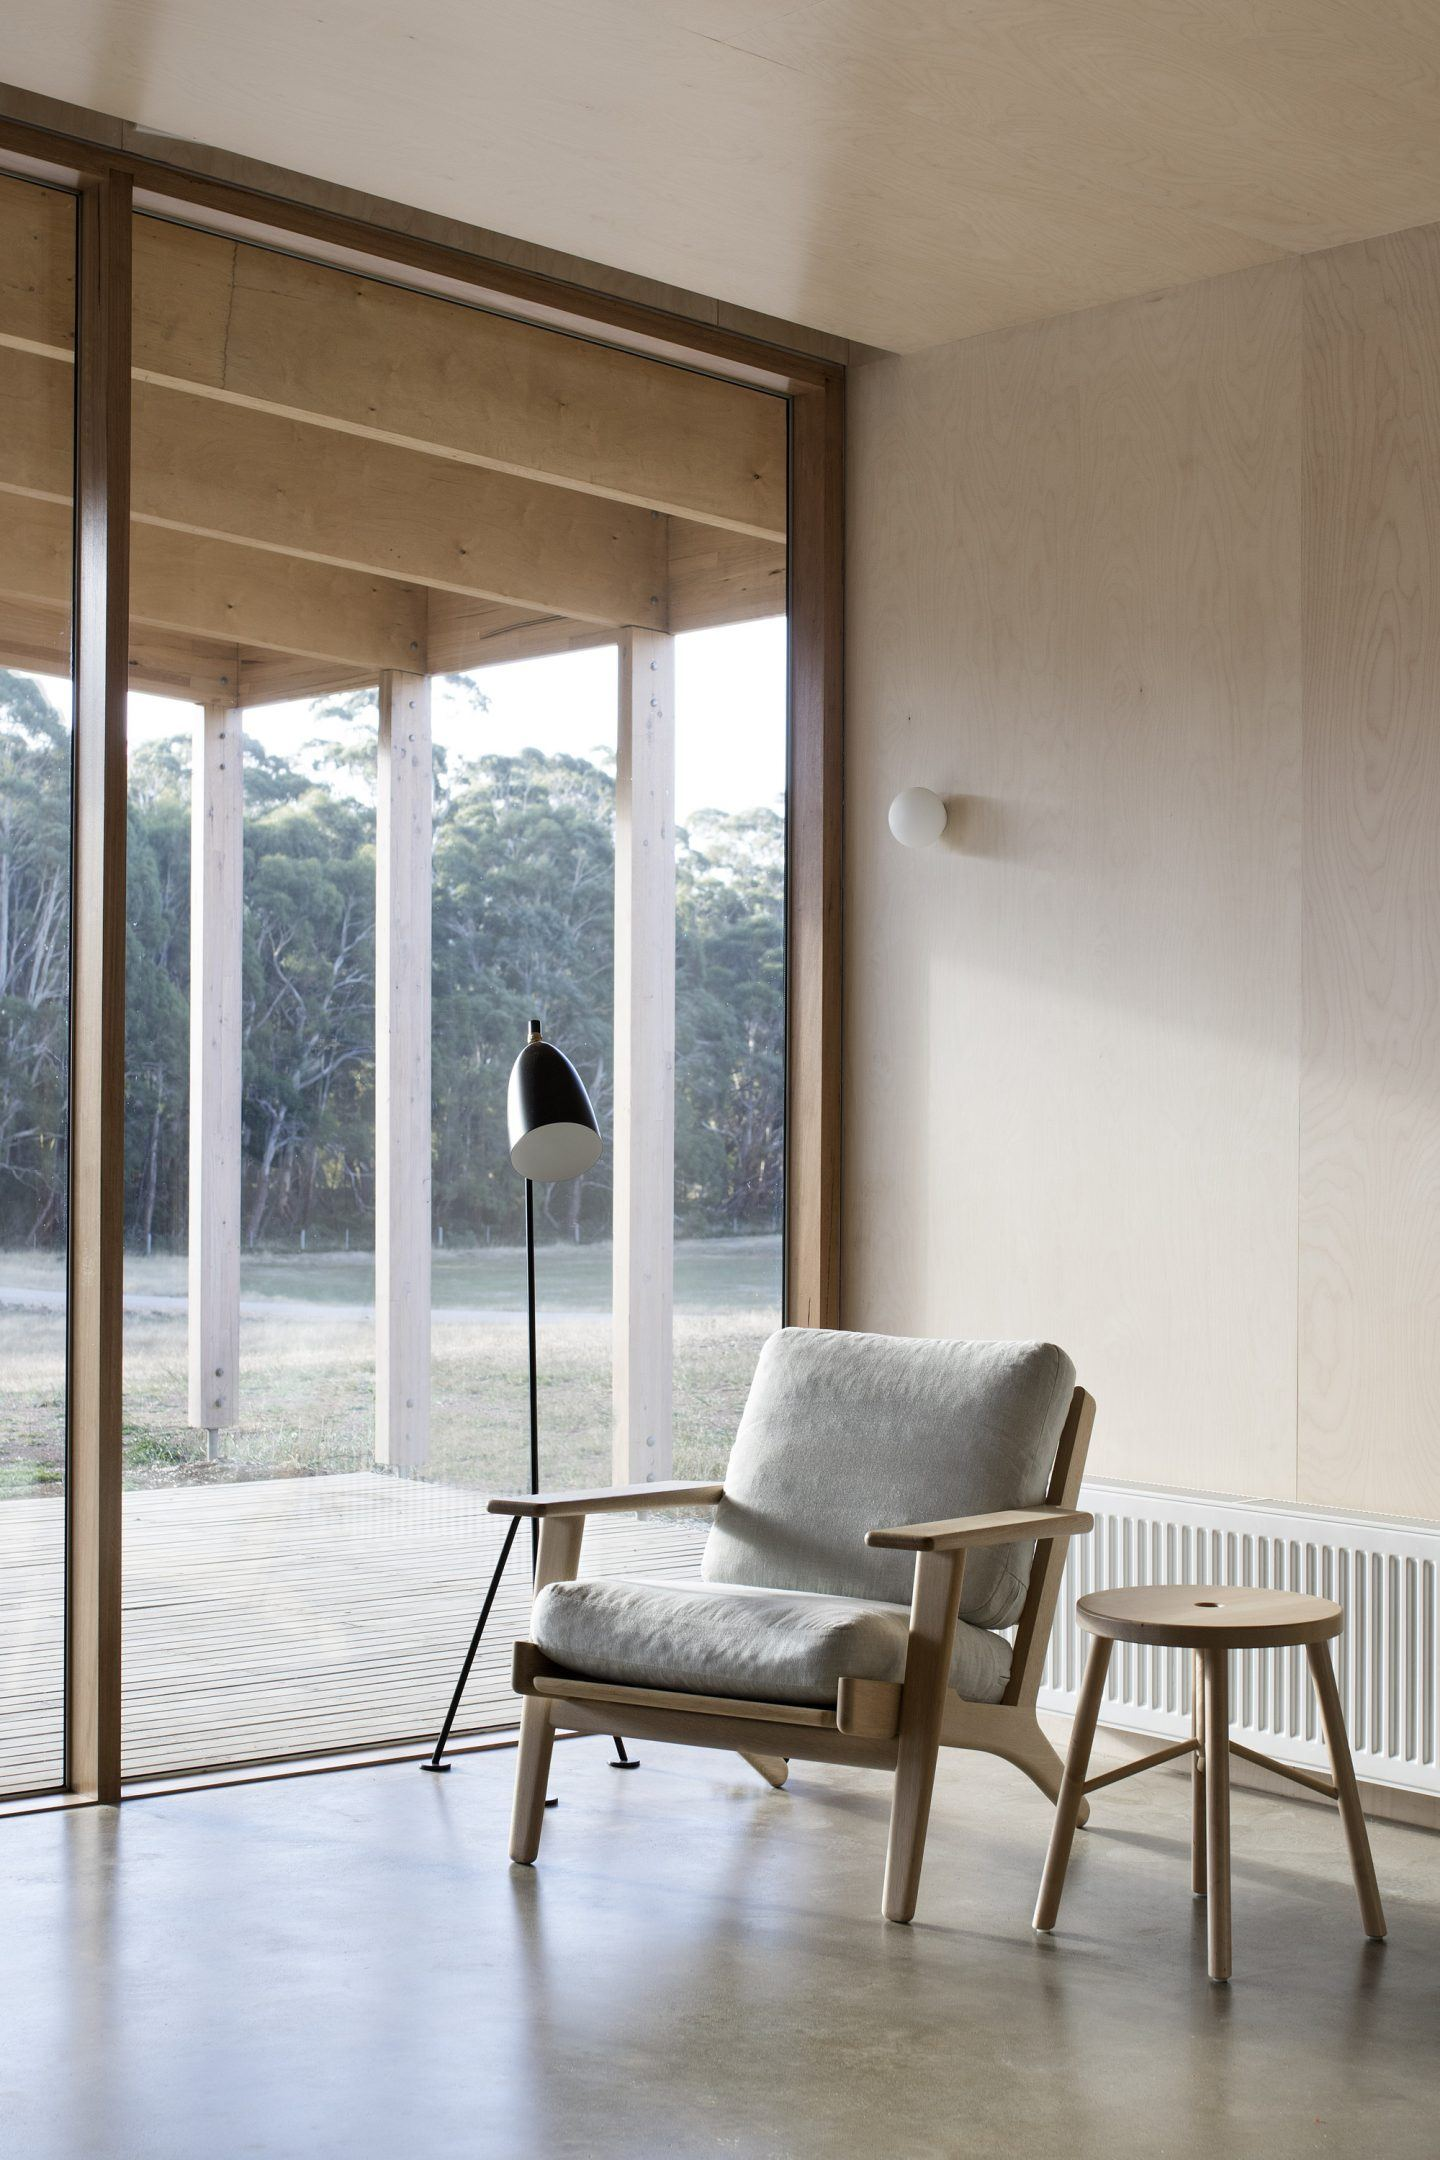 IGNANT-Architecture-Lovell-Burton-Architects-Springhill-House-13